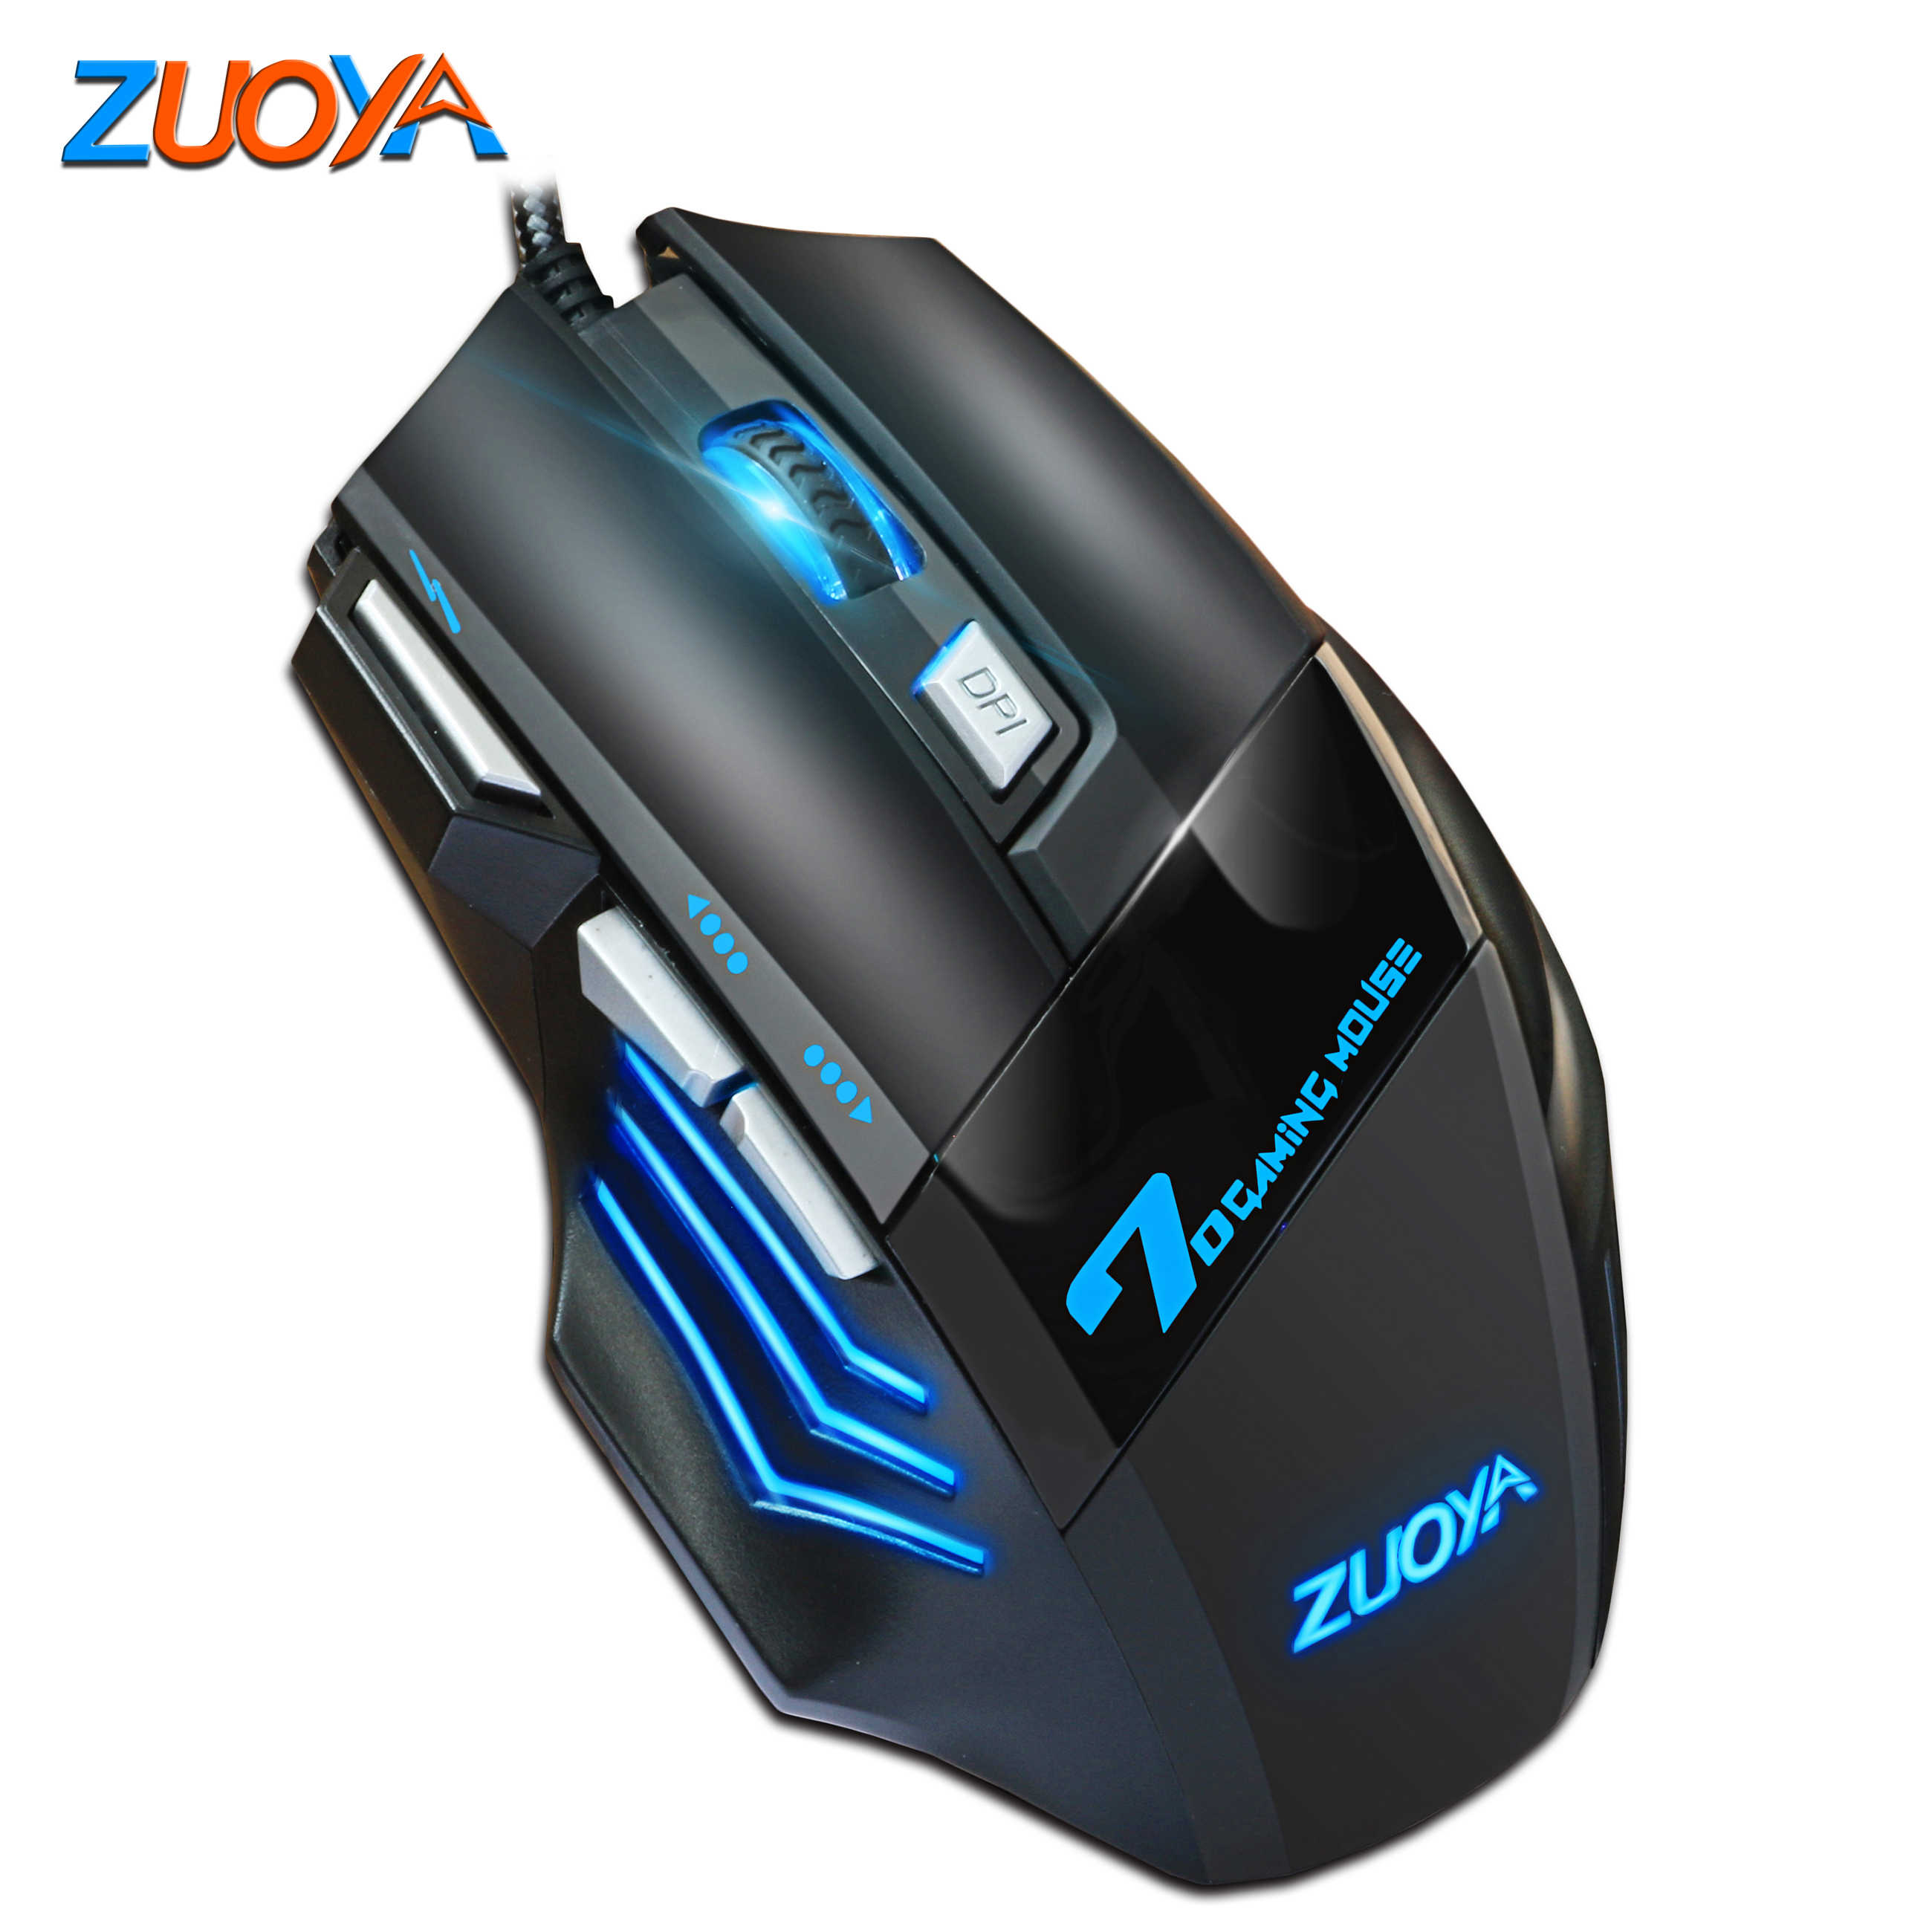 Color : MMR4 White Mouse Professional Gaming Mouse Wired Mice 6 Button 5500DPI Adjustable Game LED Optical Gamer USB Mause for PC Laptop Notebook Game